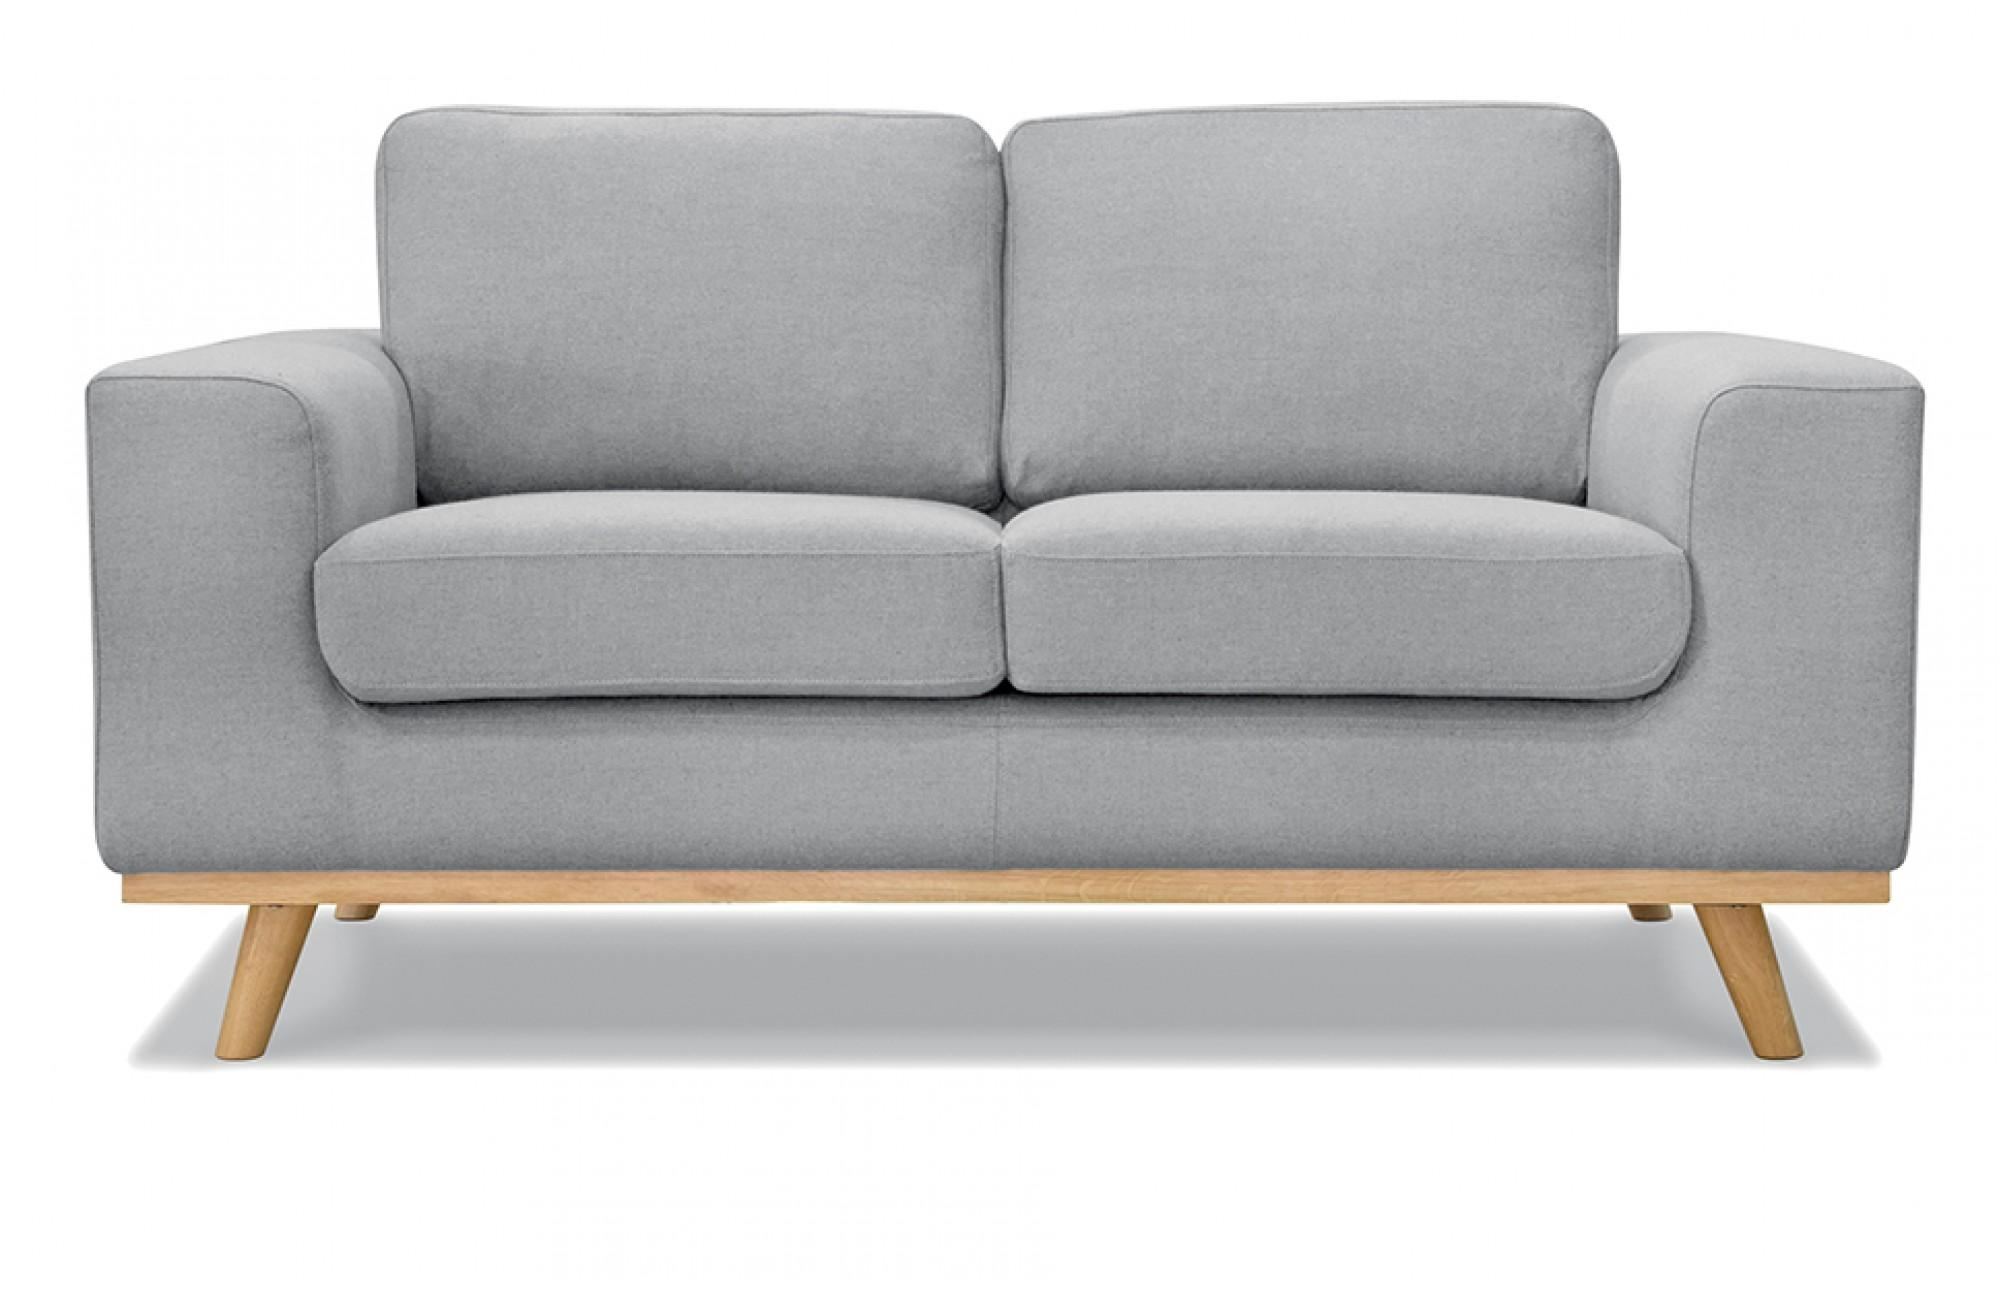 Olivia 2 Seater Sofa In Grey Out And Out Original Inside Two Seater Sofas (Image 13 of 20)